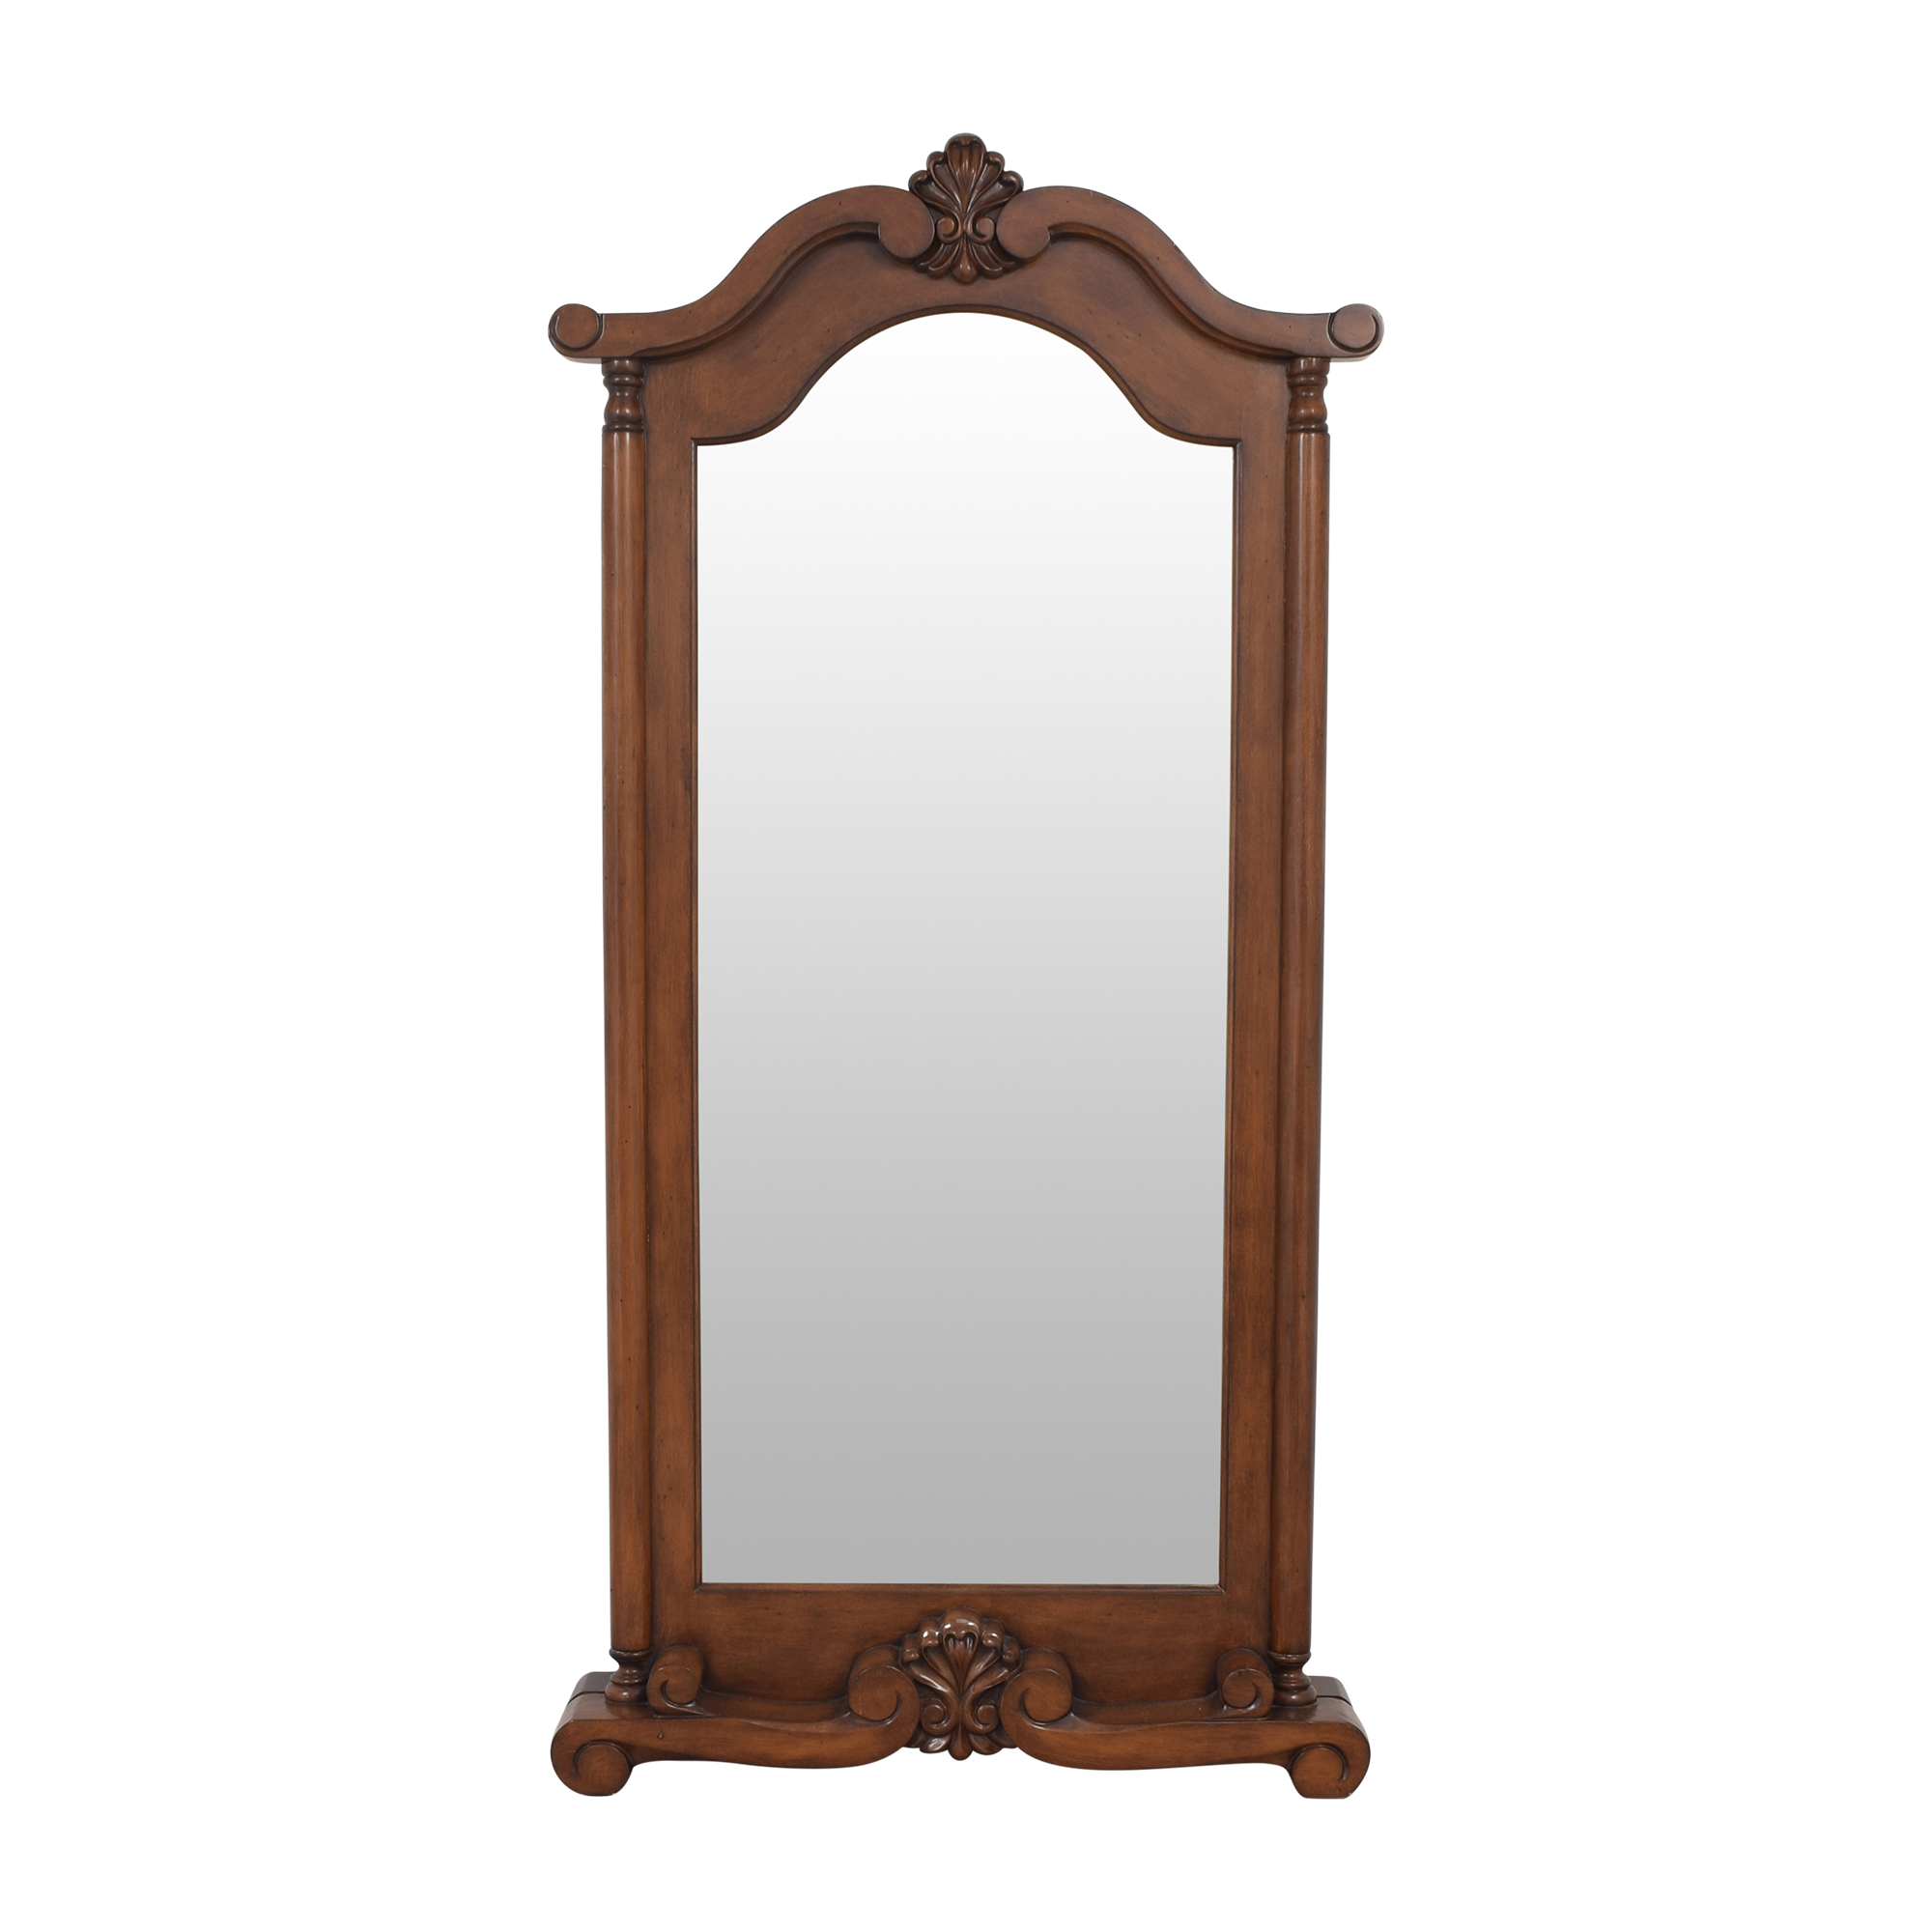 buy Coaster Fine Furniture Coaster Grand Warm Brown Floor Mirror online